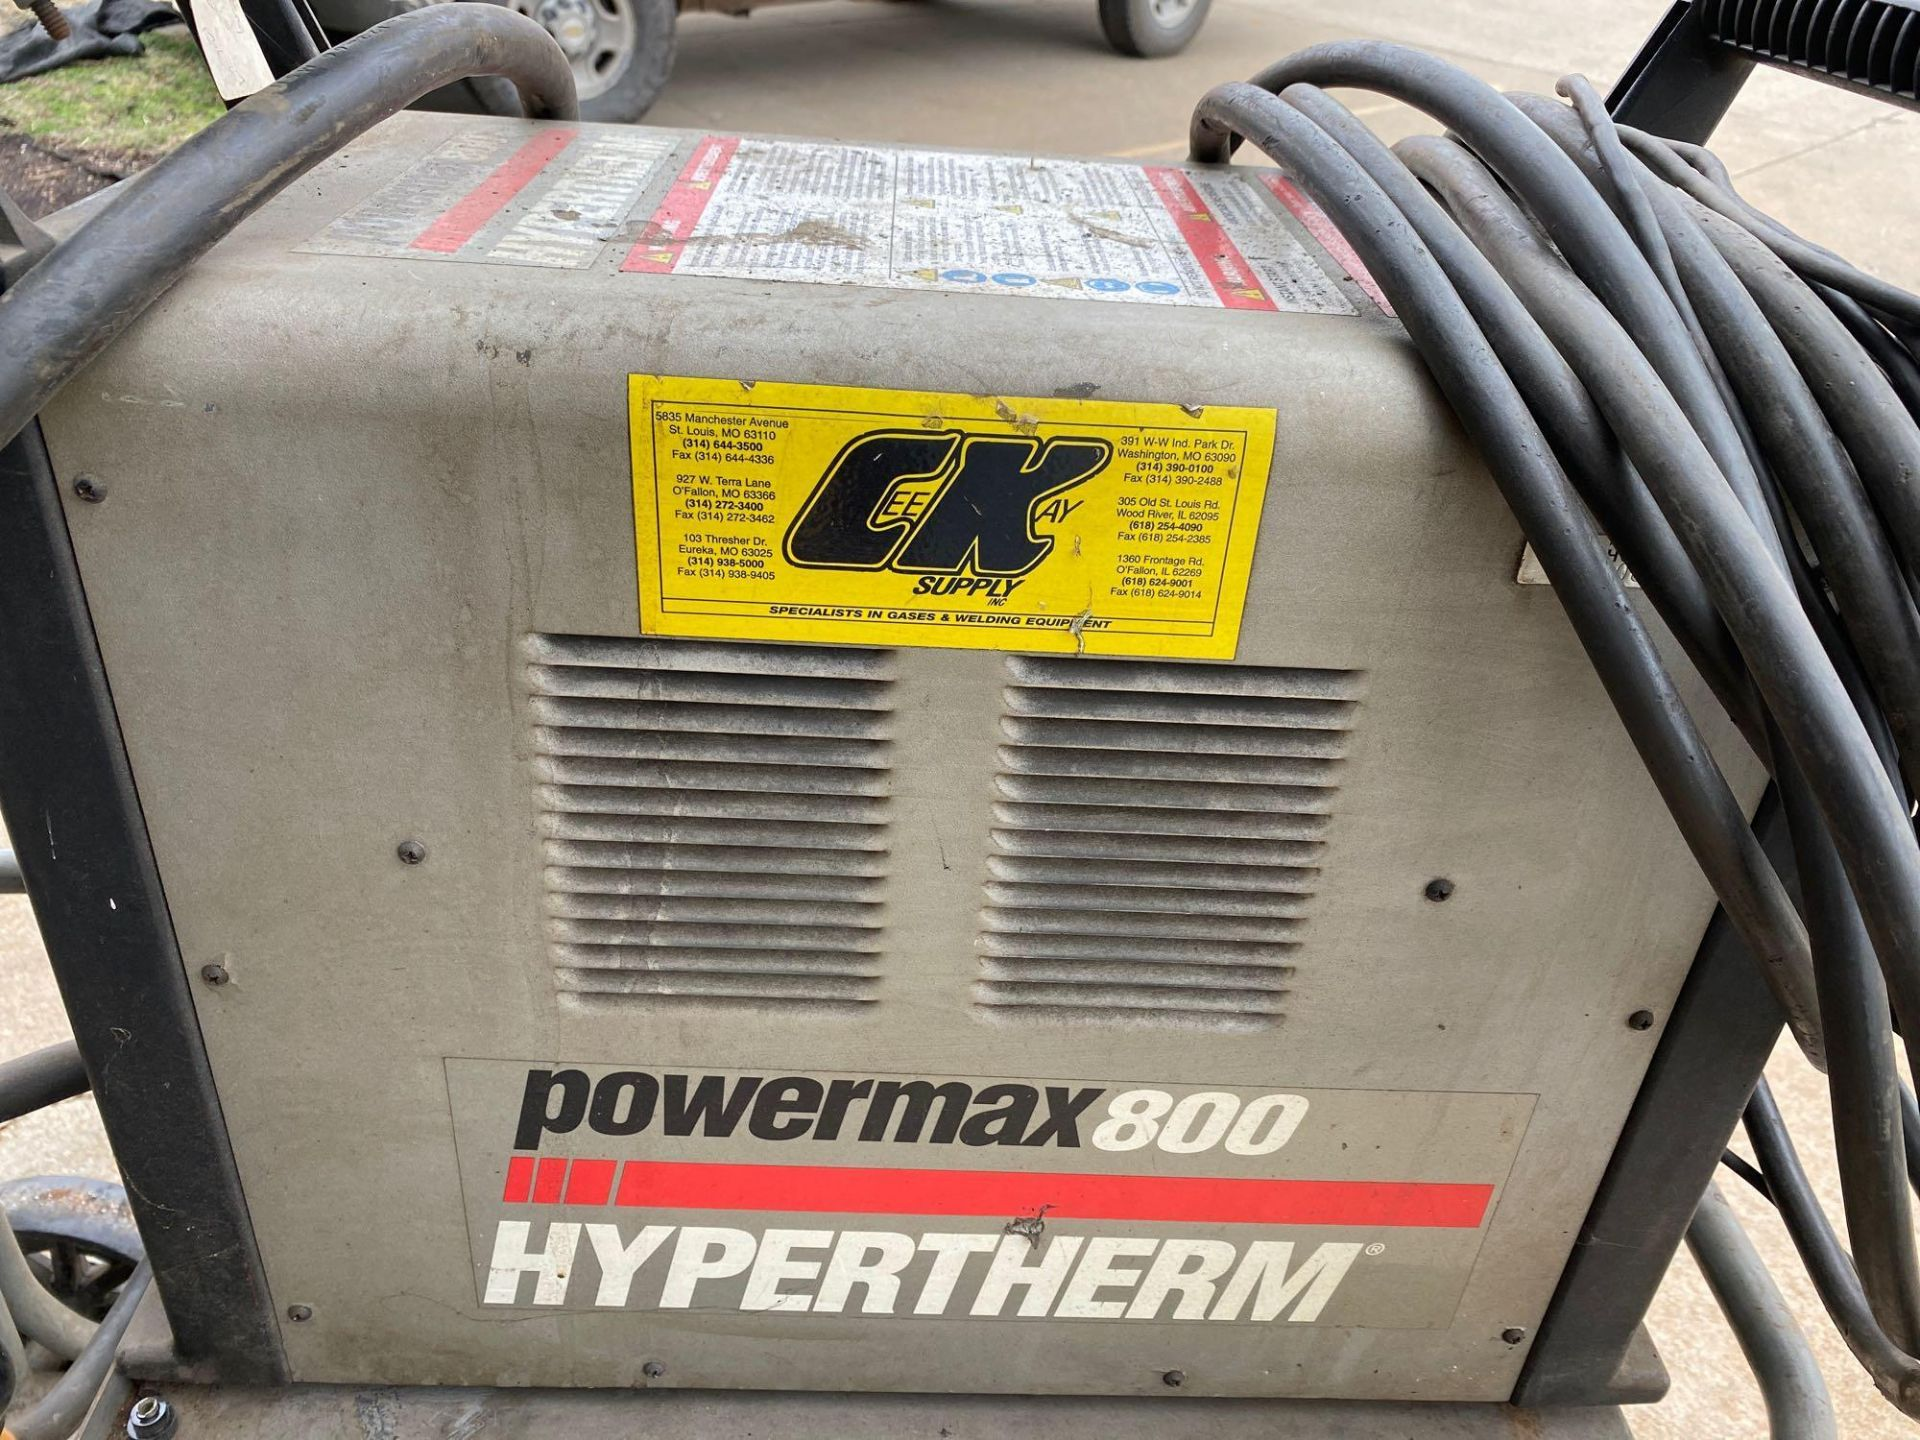 Power Max 800 Hypertherm Plasma Cutter - Image 8 of 8